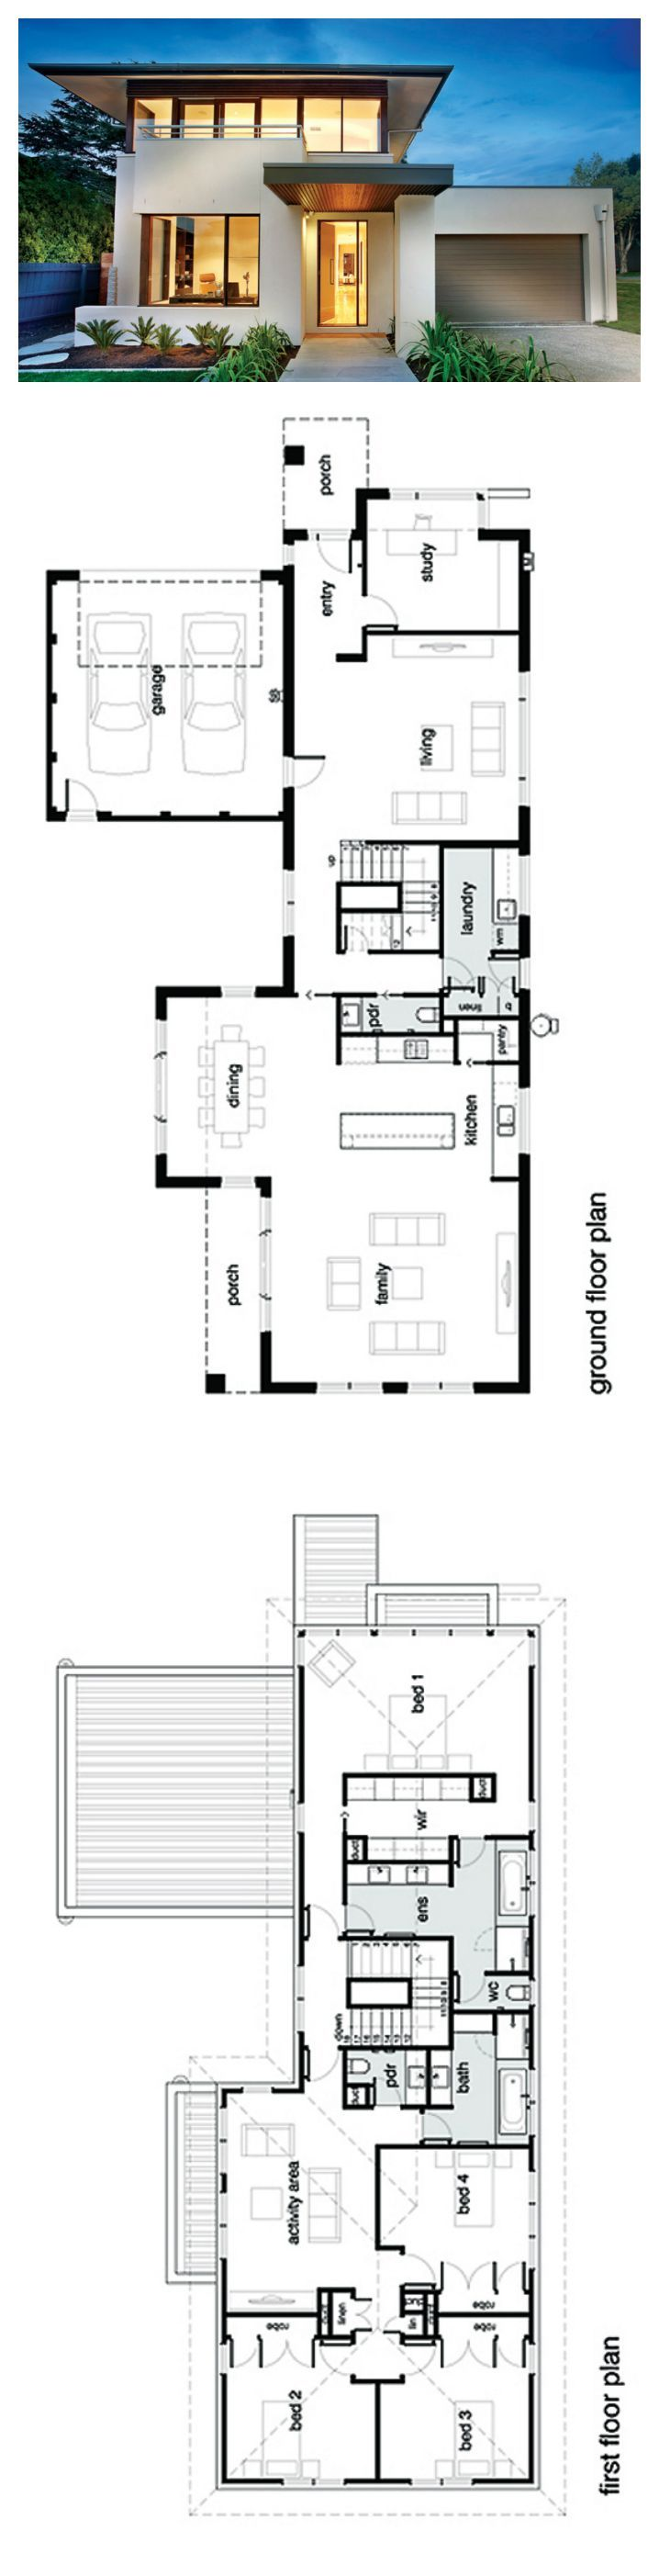 Best 25 modern house plans ideas on pinterest modern for Www house design plan com